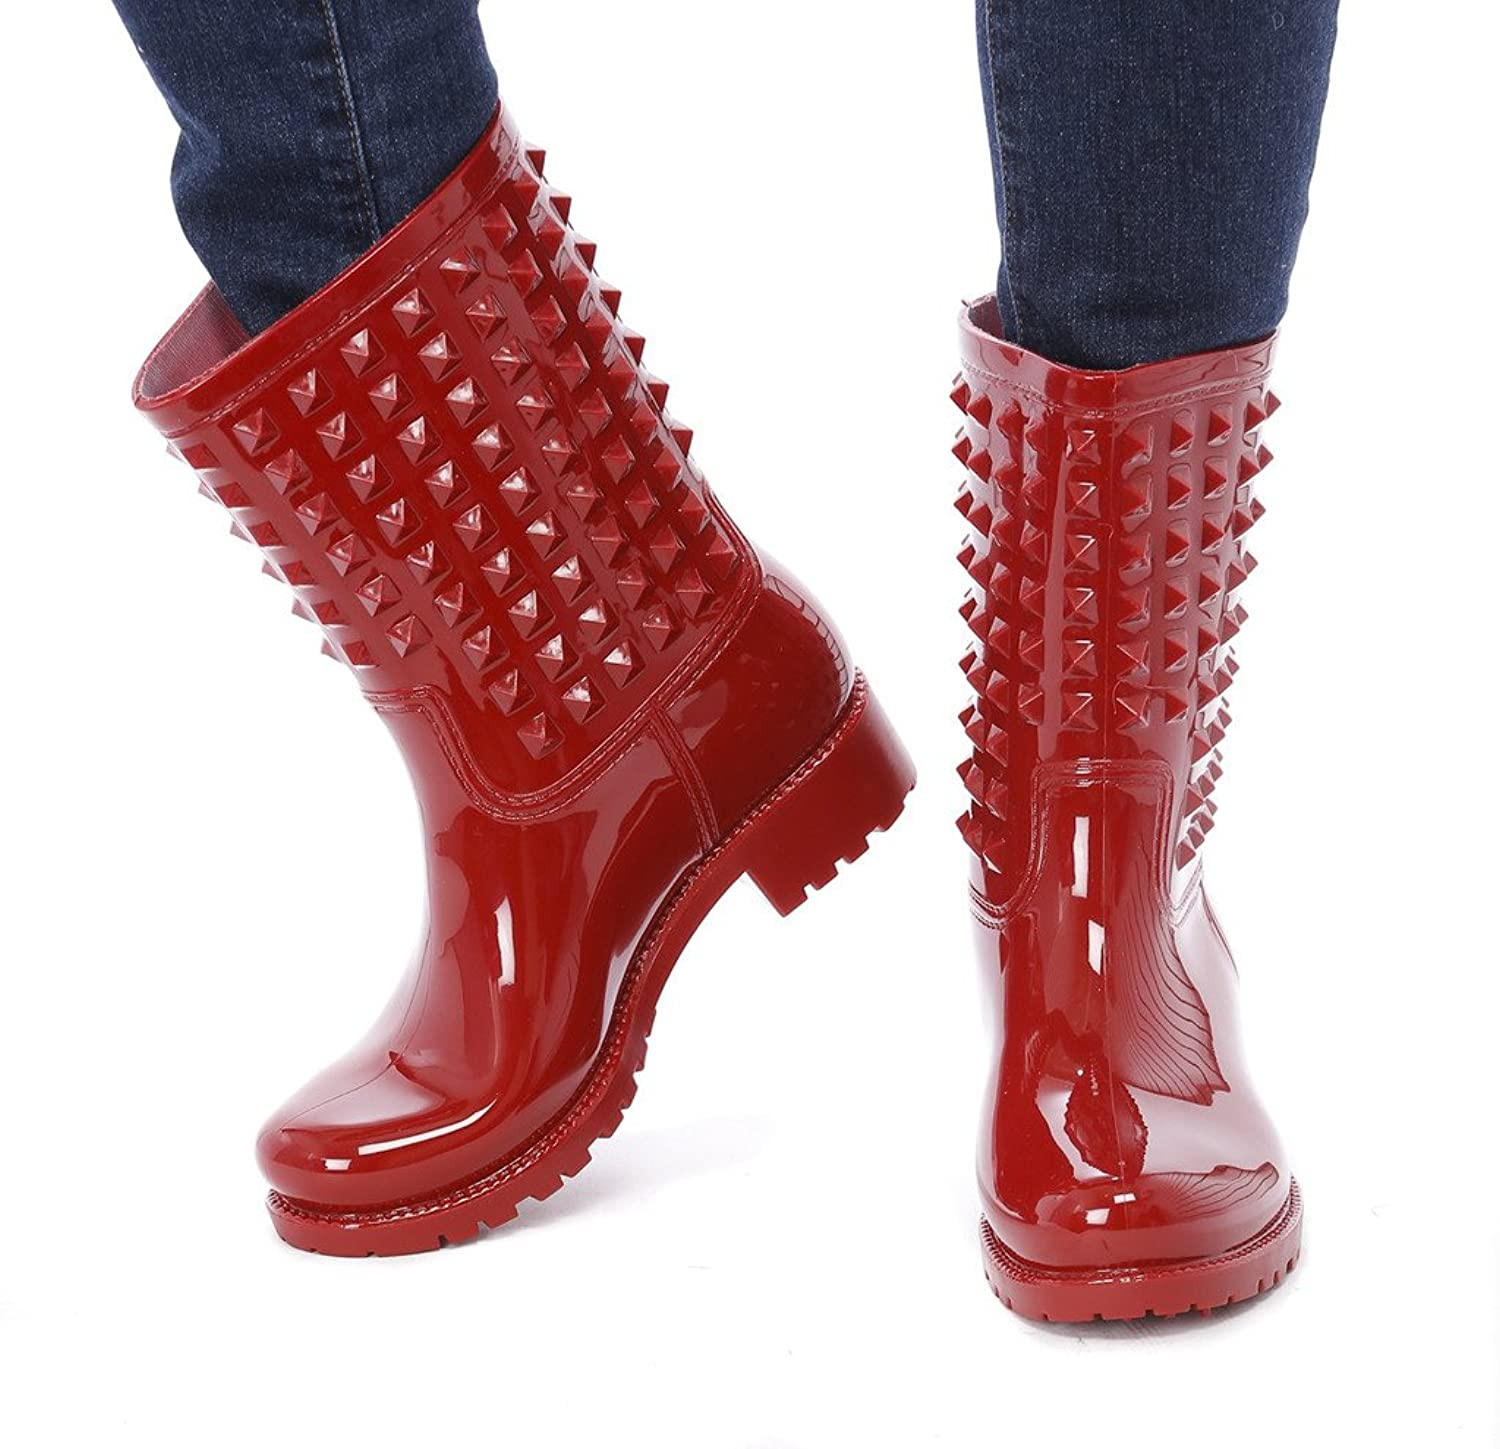 Slush & Rain Rubber comfortable Boots with studded details on shaft